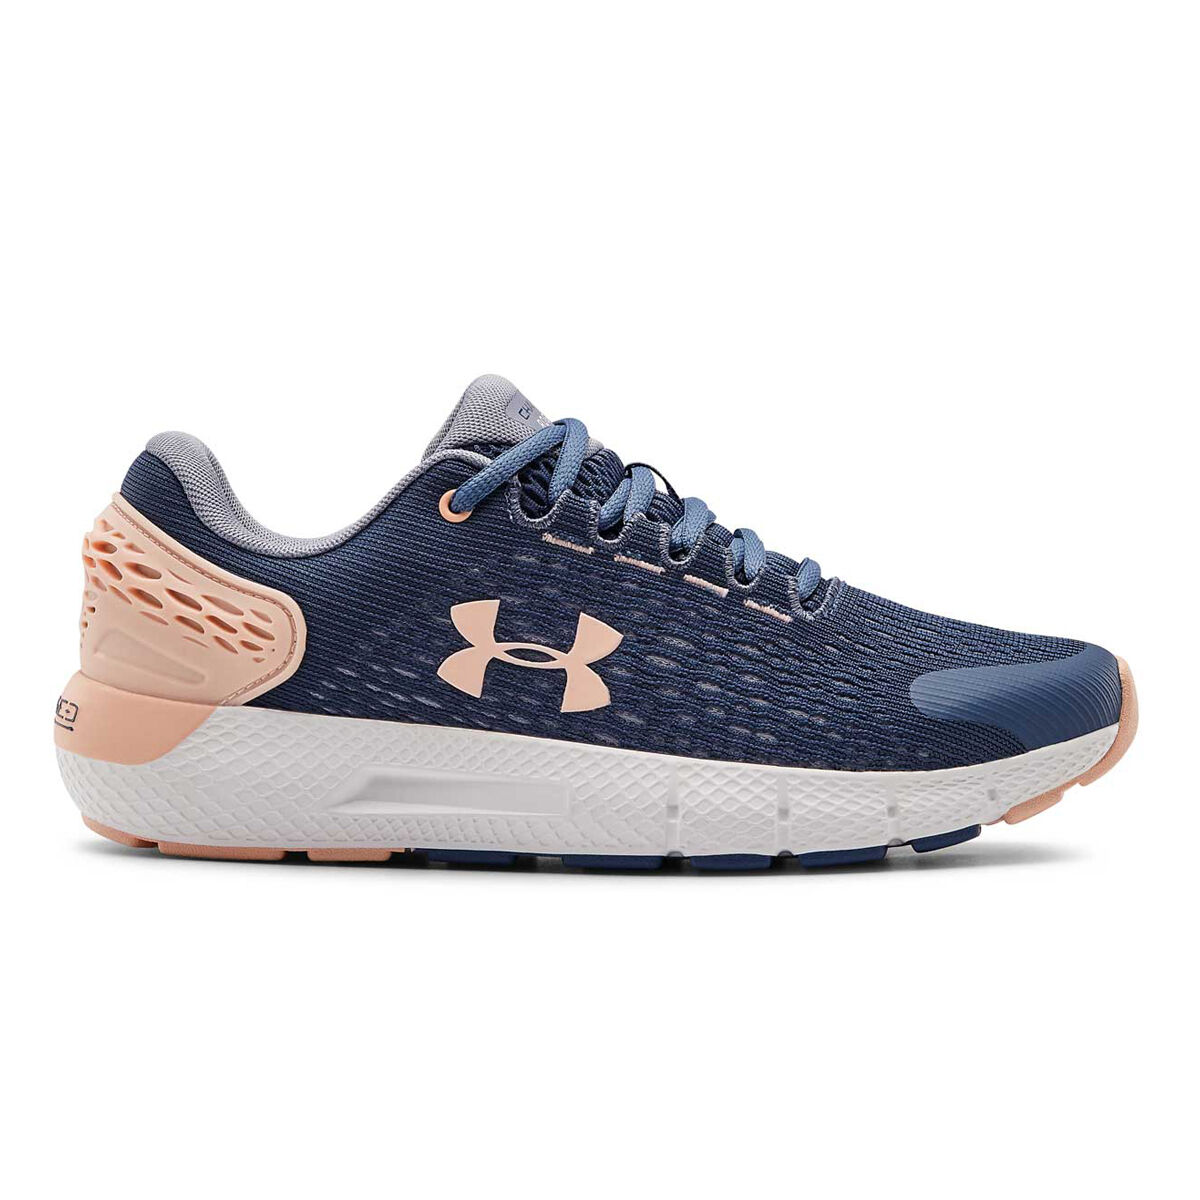 Under Armour Charged Rogue 2 Kids